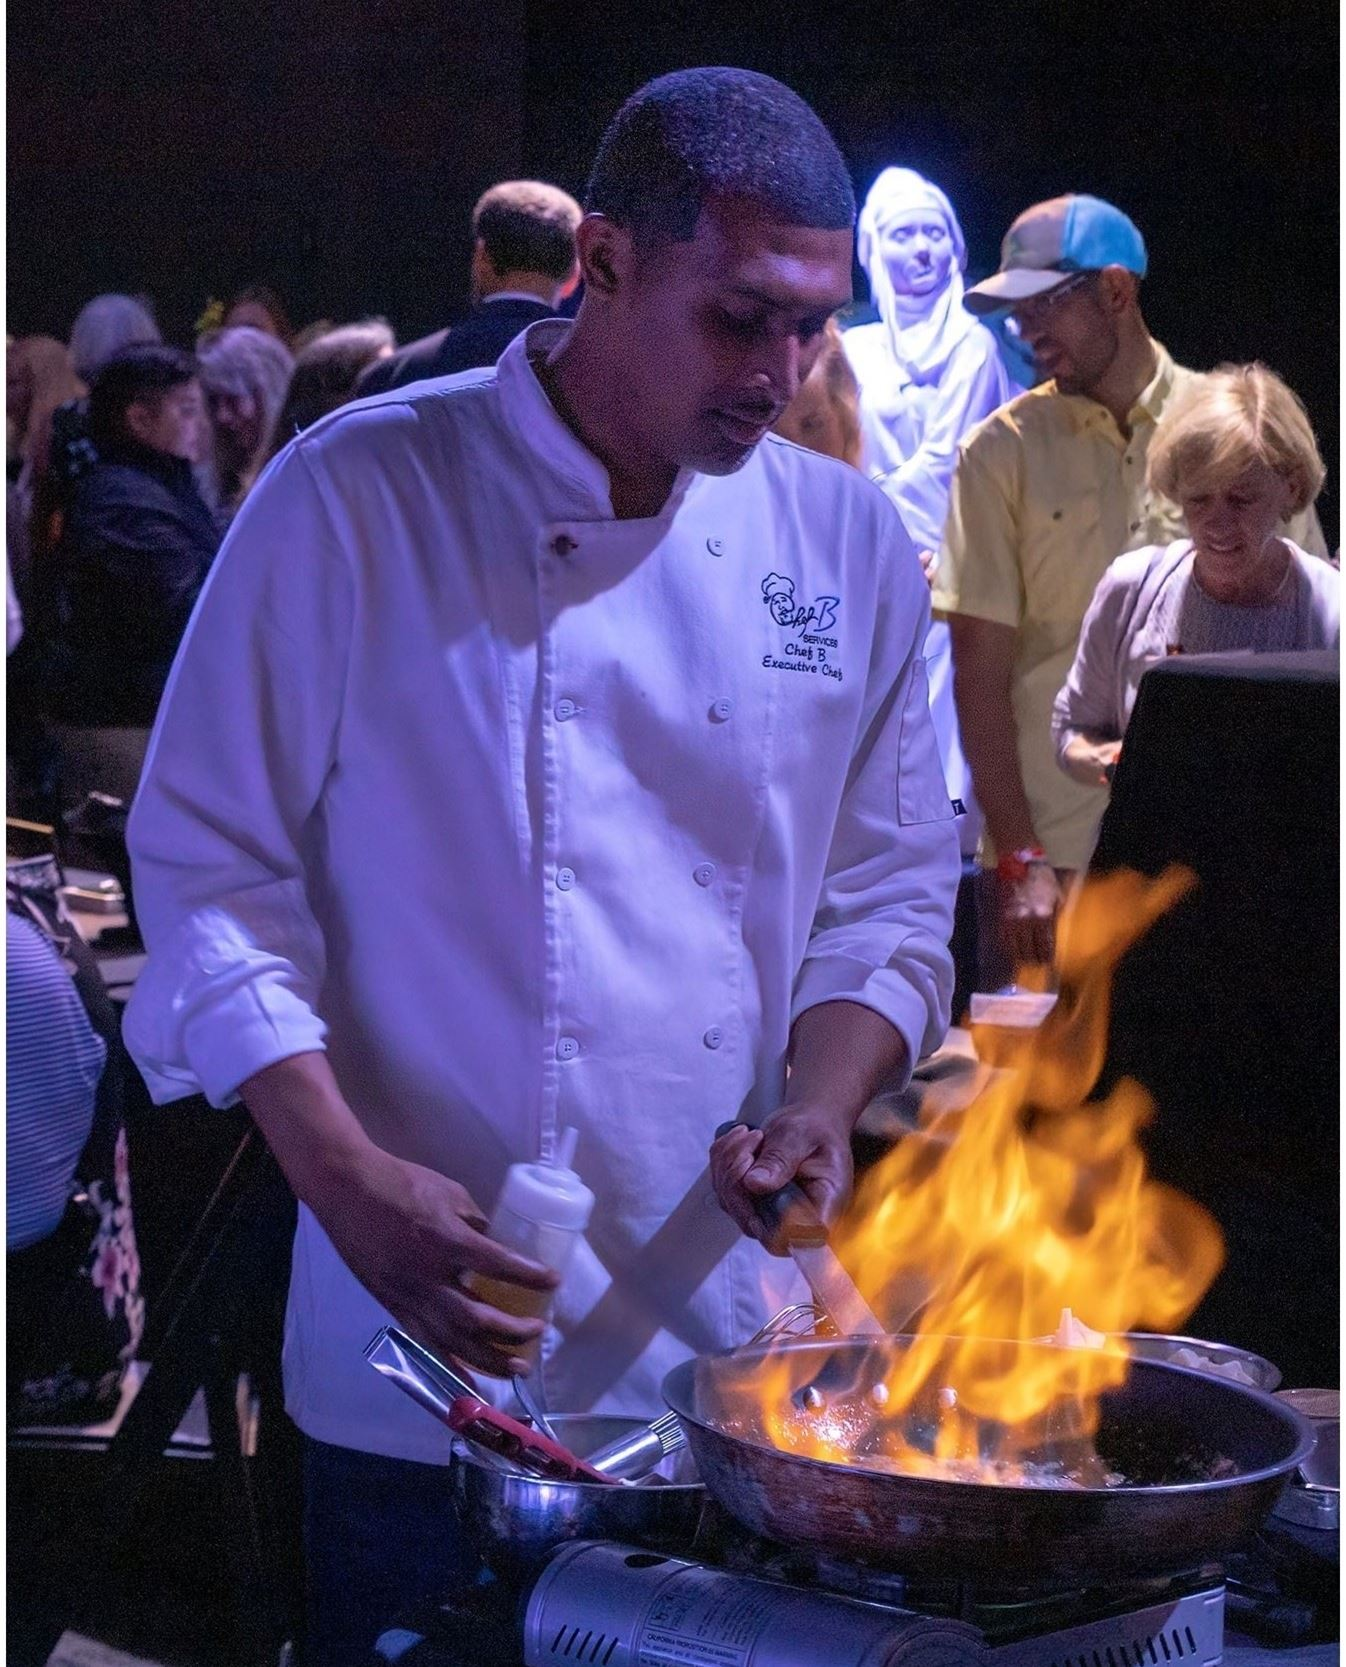 Man in chef coat cooking with flames coming from a pan